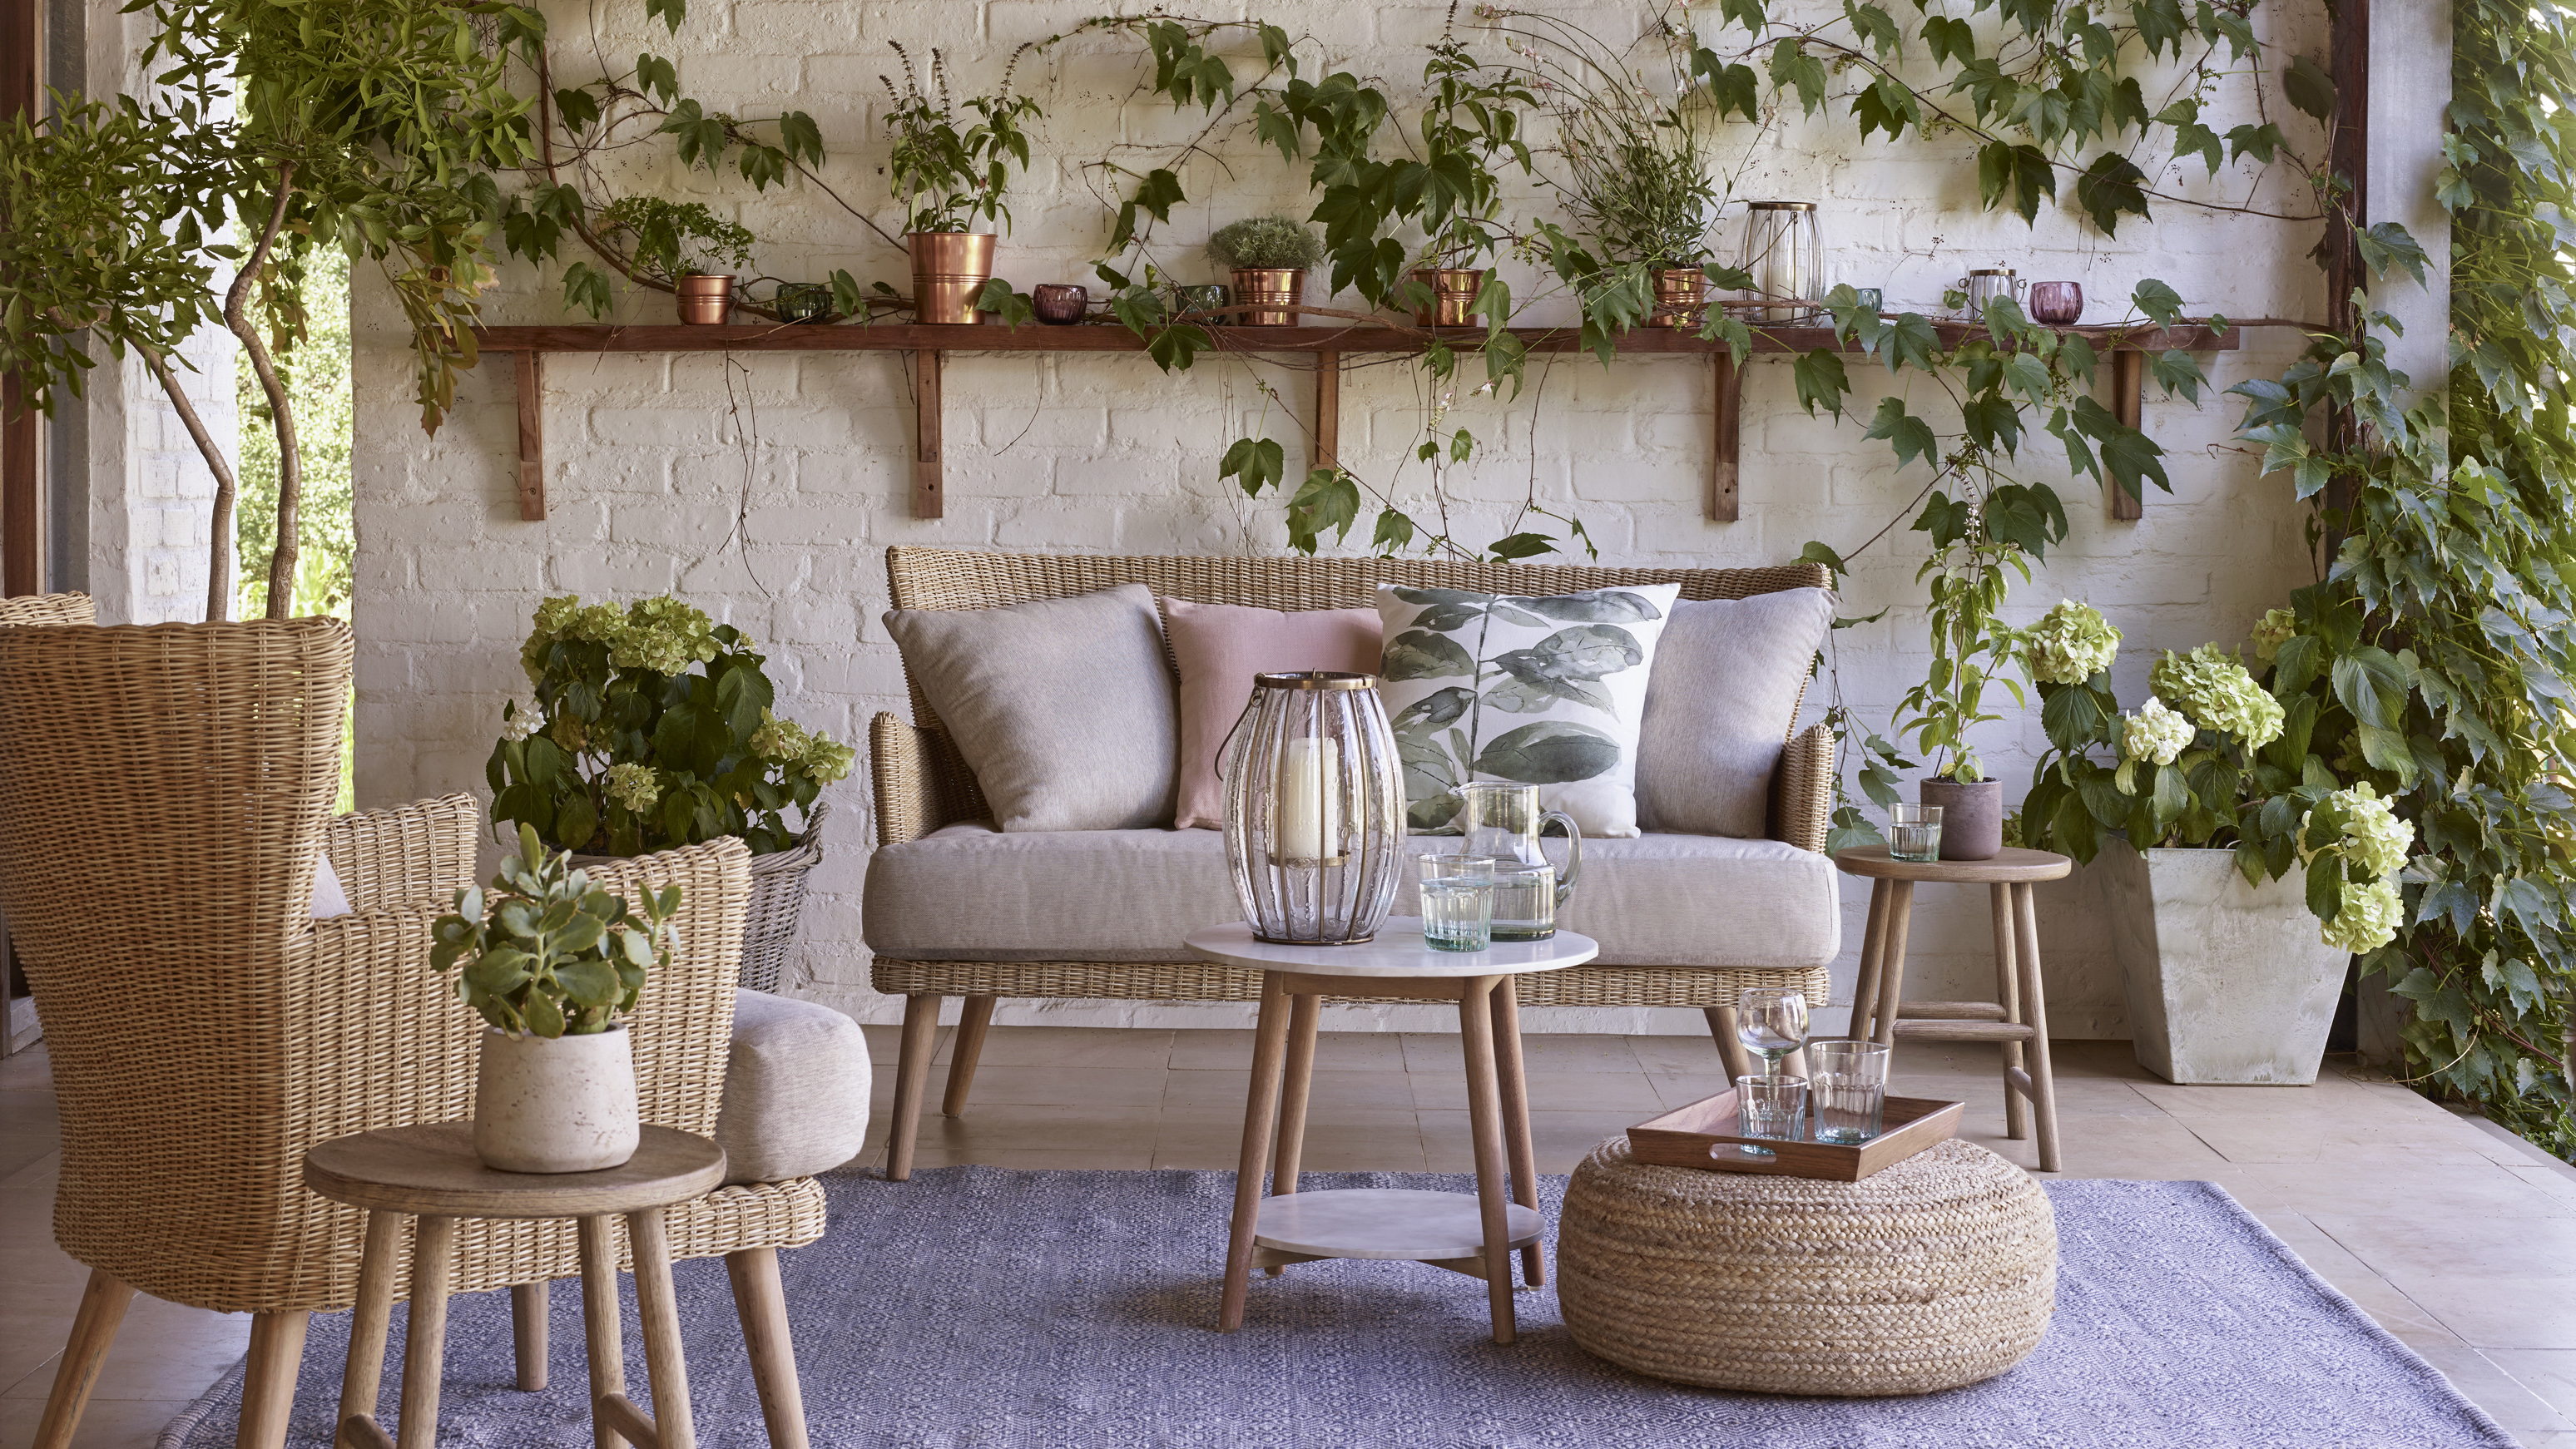 Free Outdoor Living Space Advice